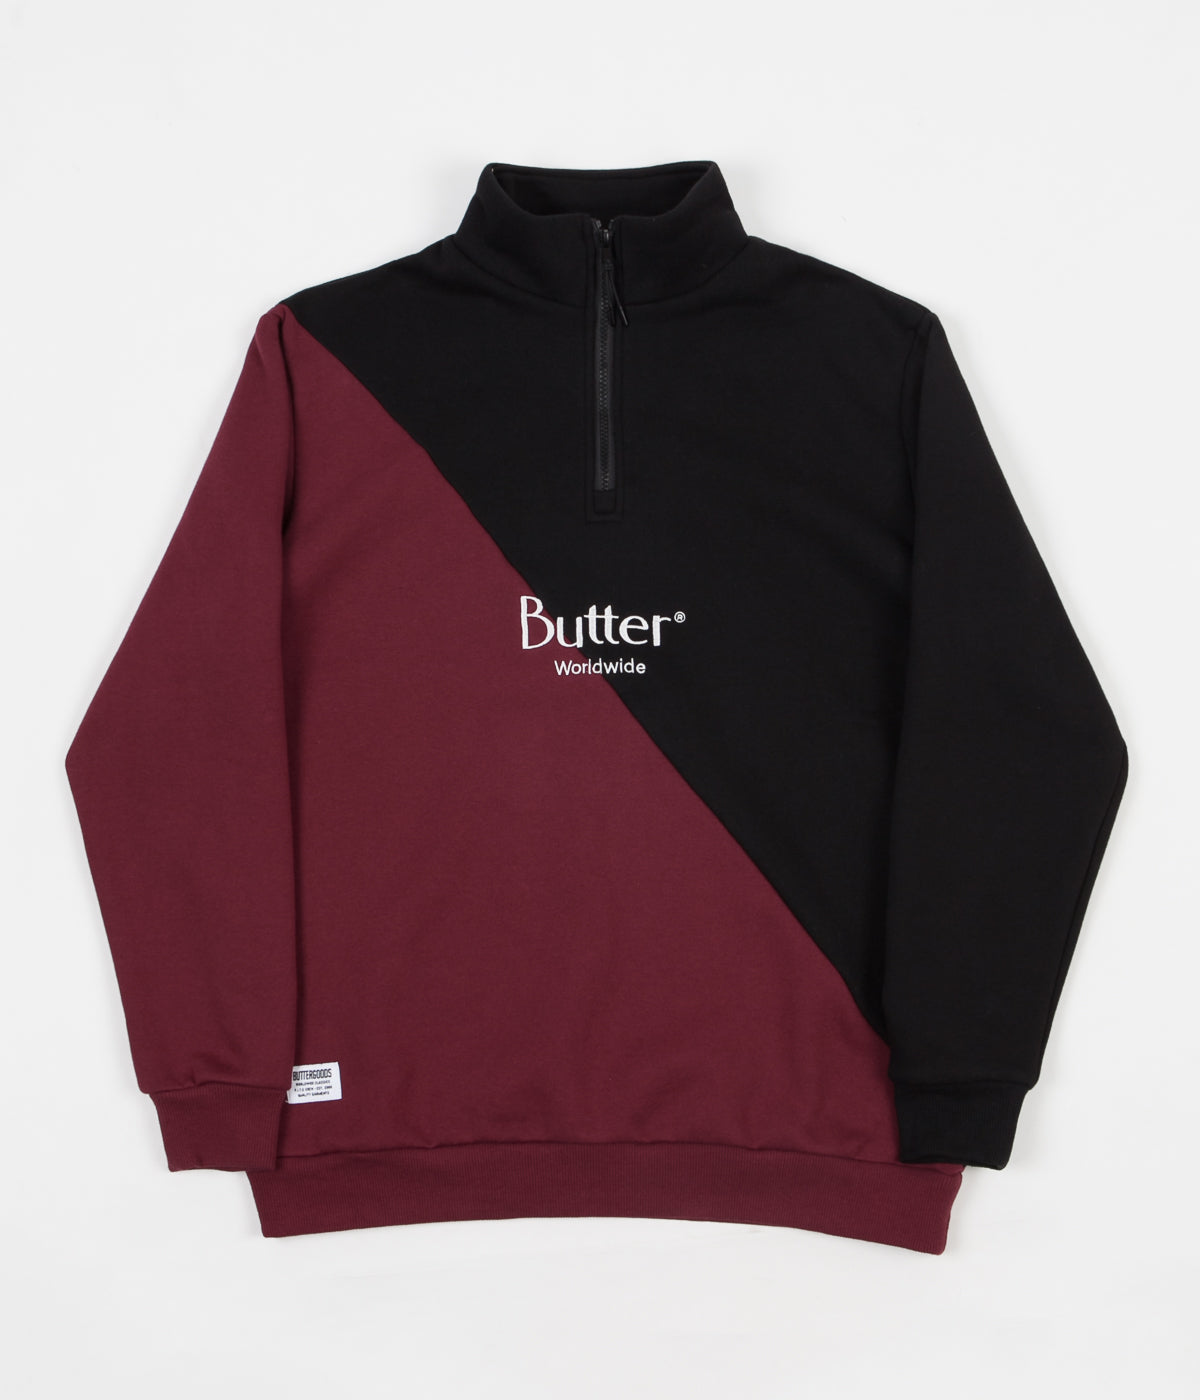 Butter Goods Split 1/4 Zip Sweatshirt - Black / Burgundy